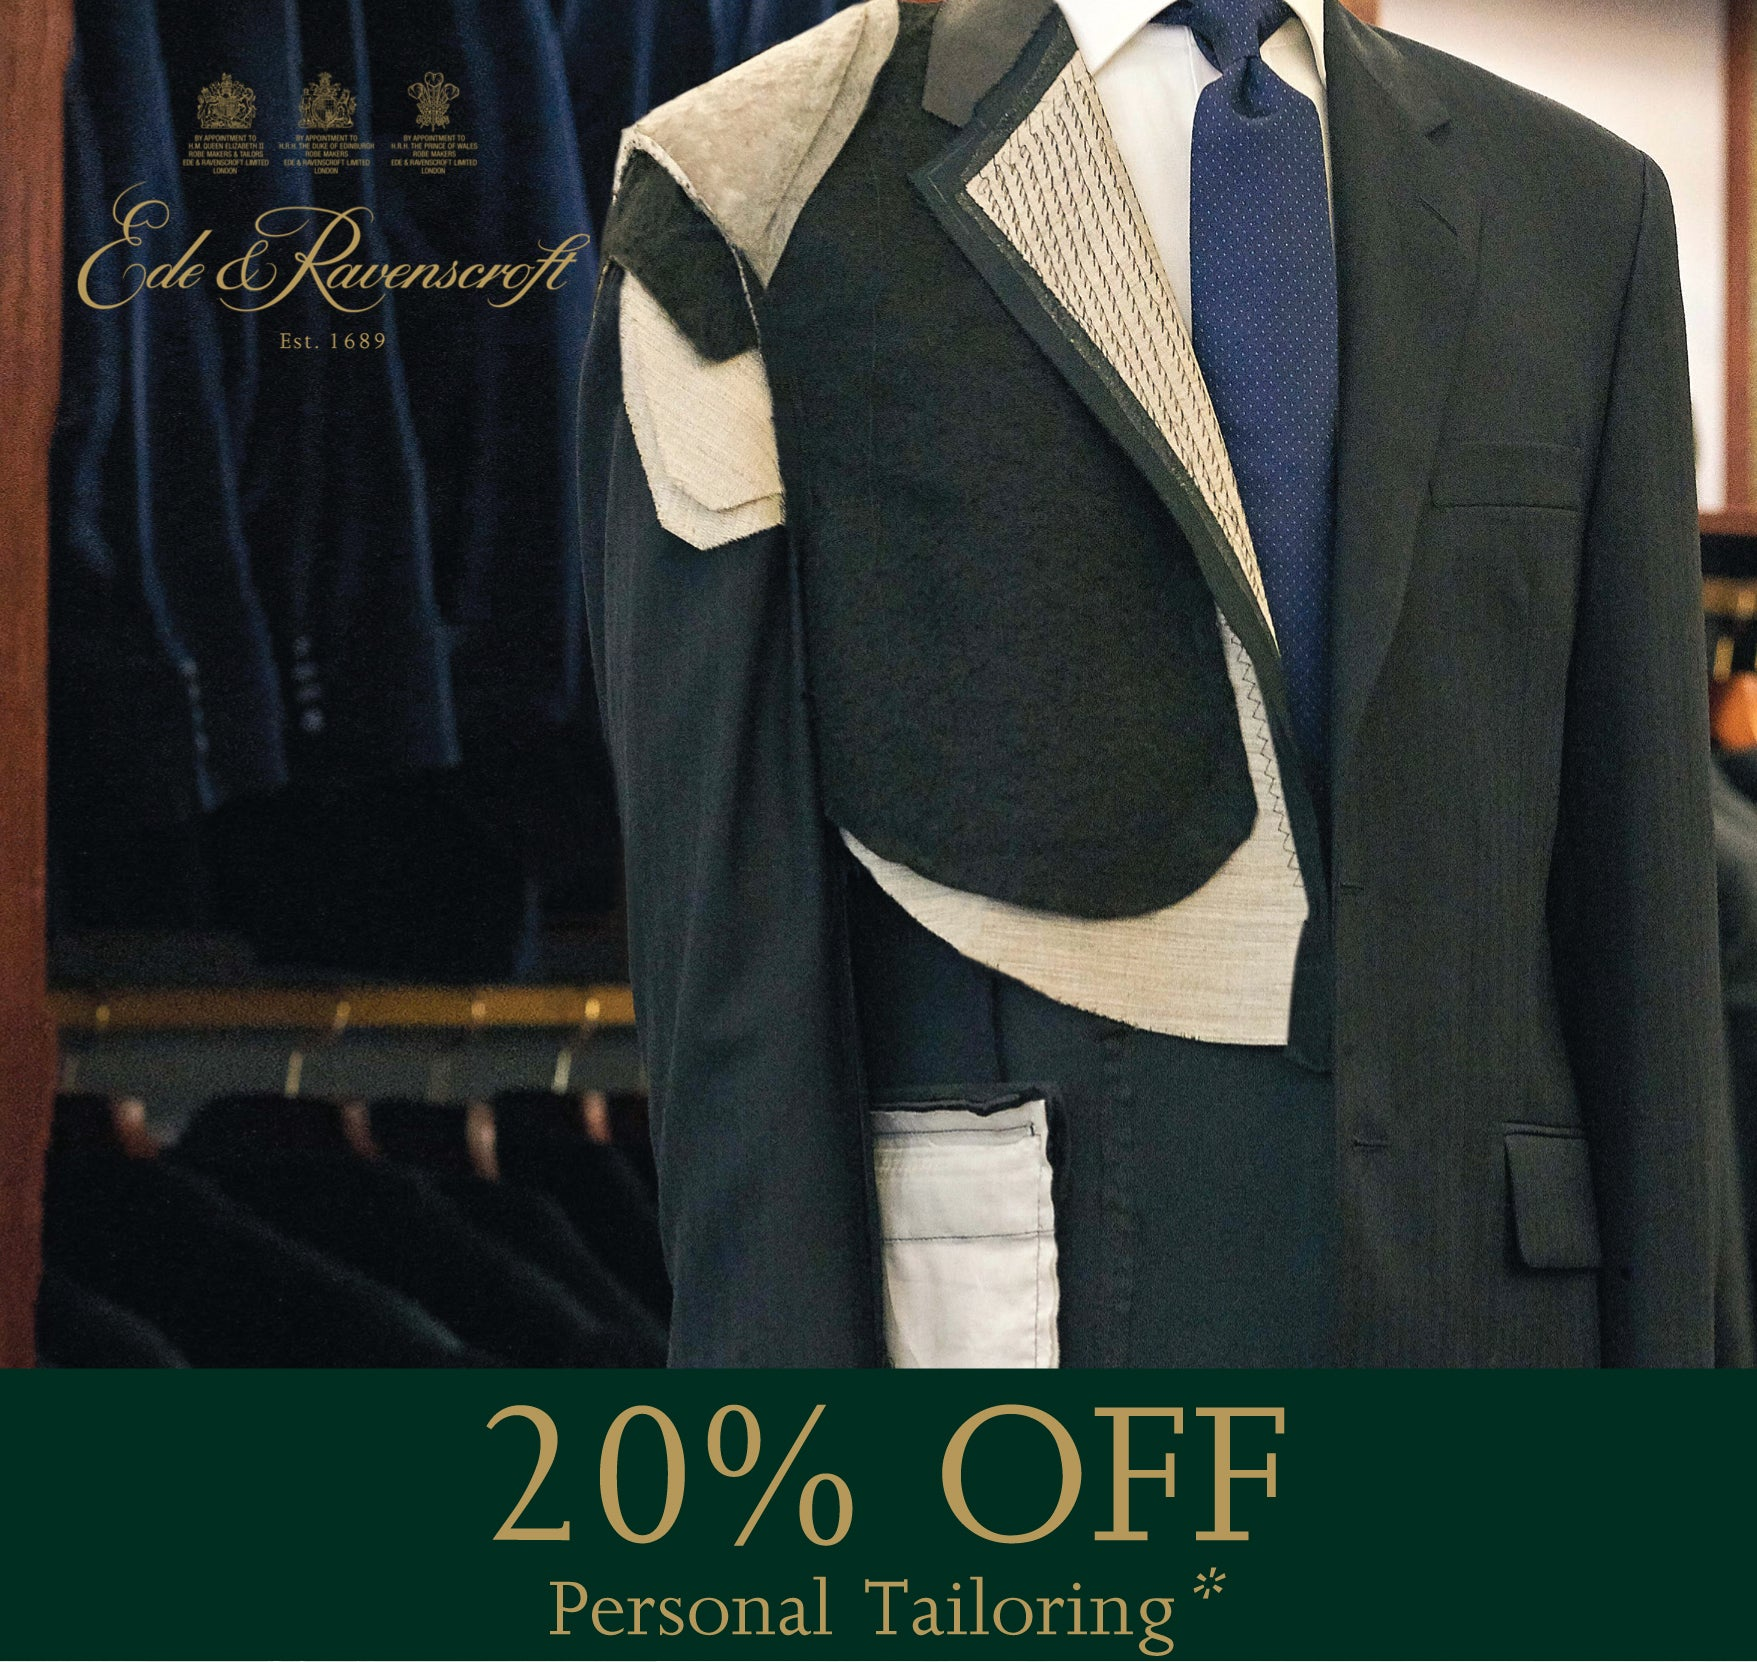 Personal Tailoring Offer: 20% off until November 30th 2019 | Links to Personal Tailoring Information